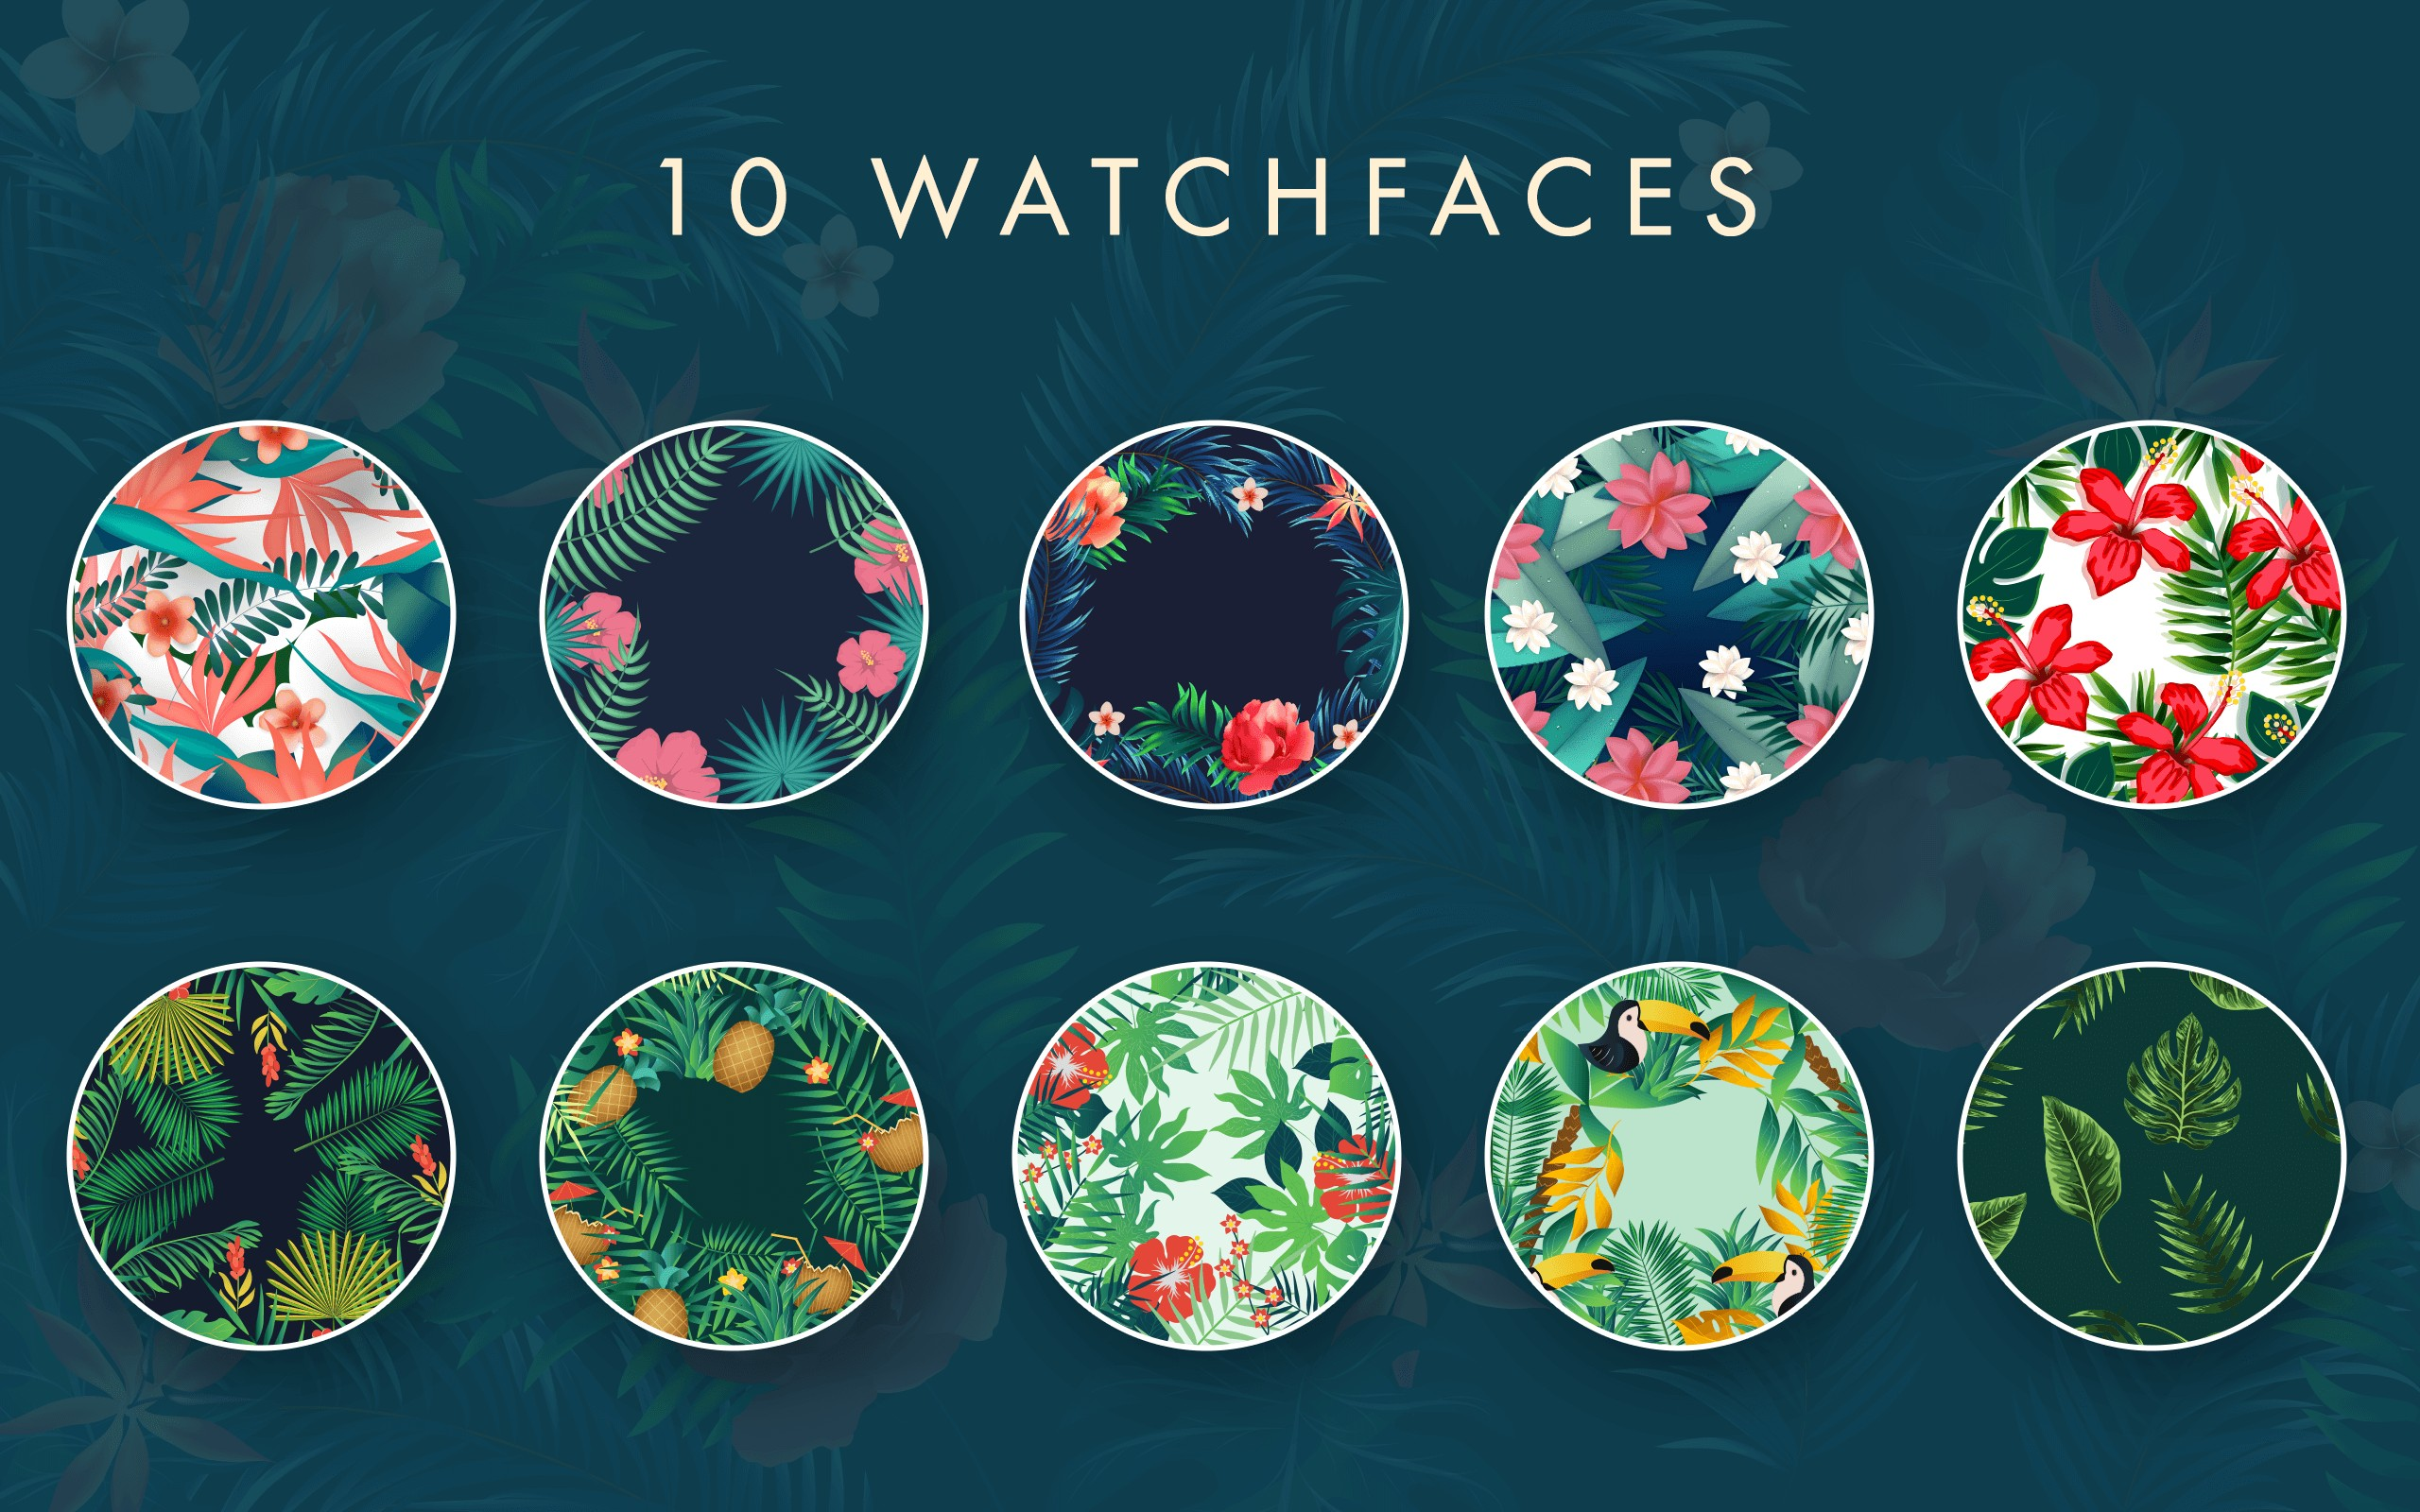 Floral Summer Watch Face